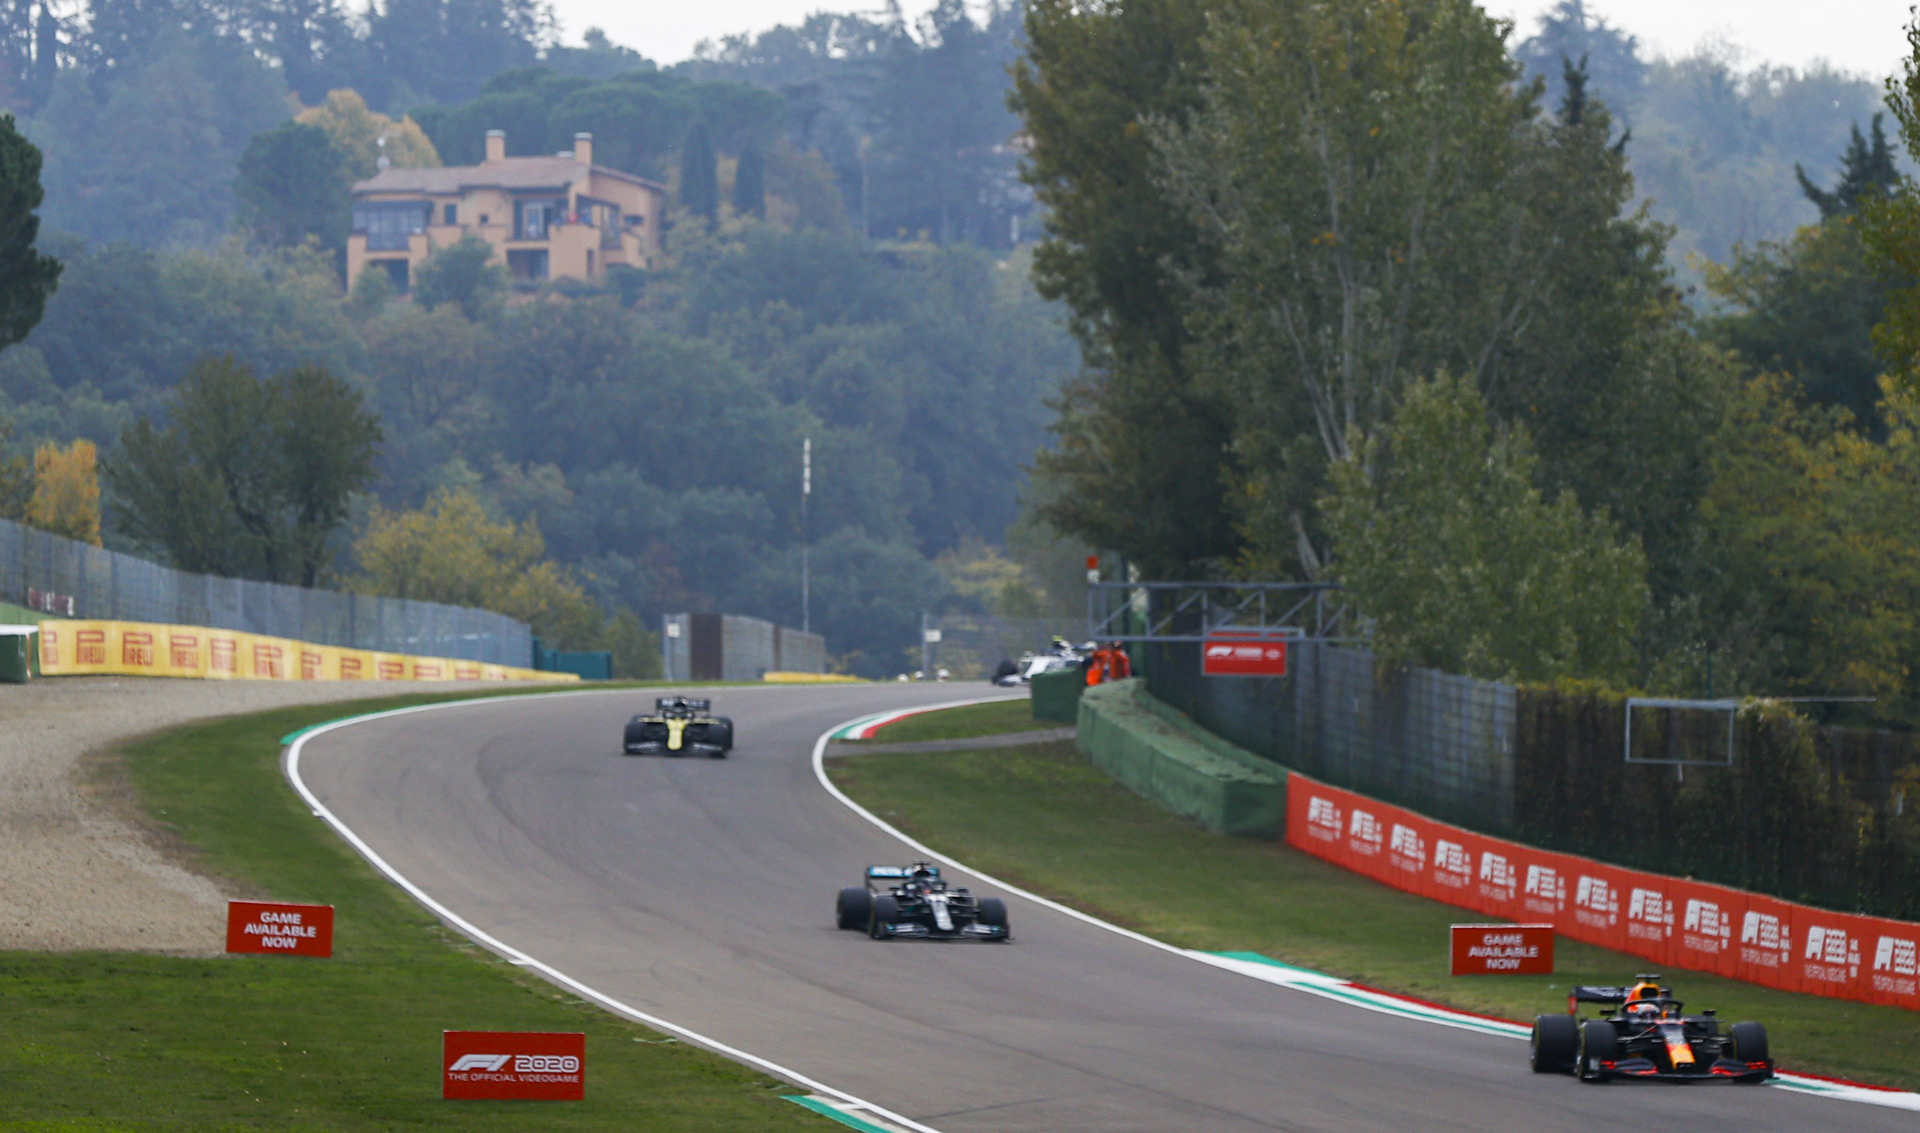 2021 Formula One Emilia Romagna Grand Prix preview: Filling in for the Chinese Grand Prix